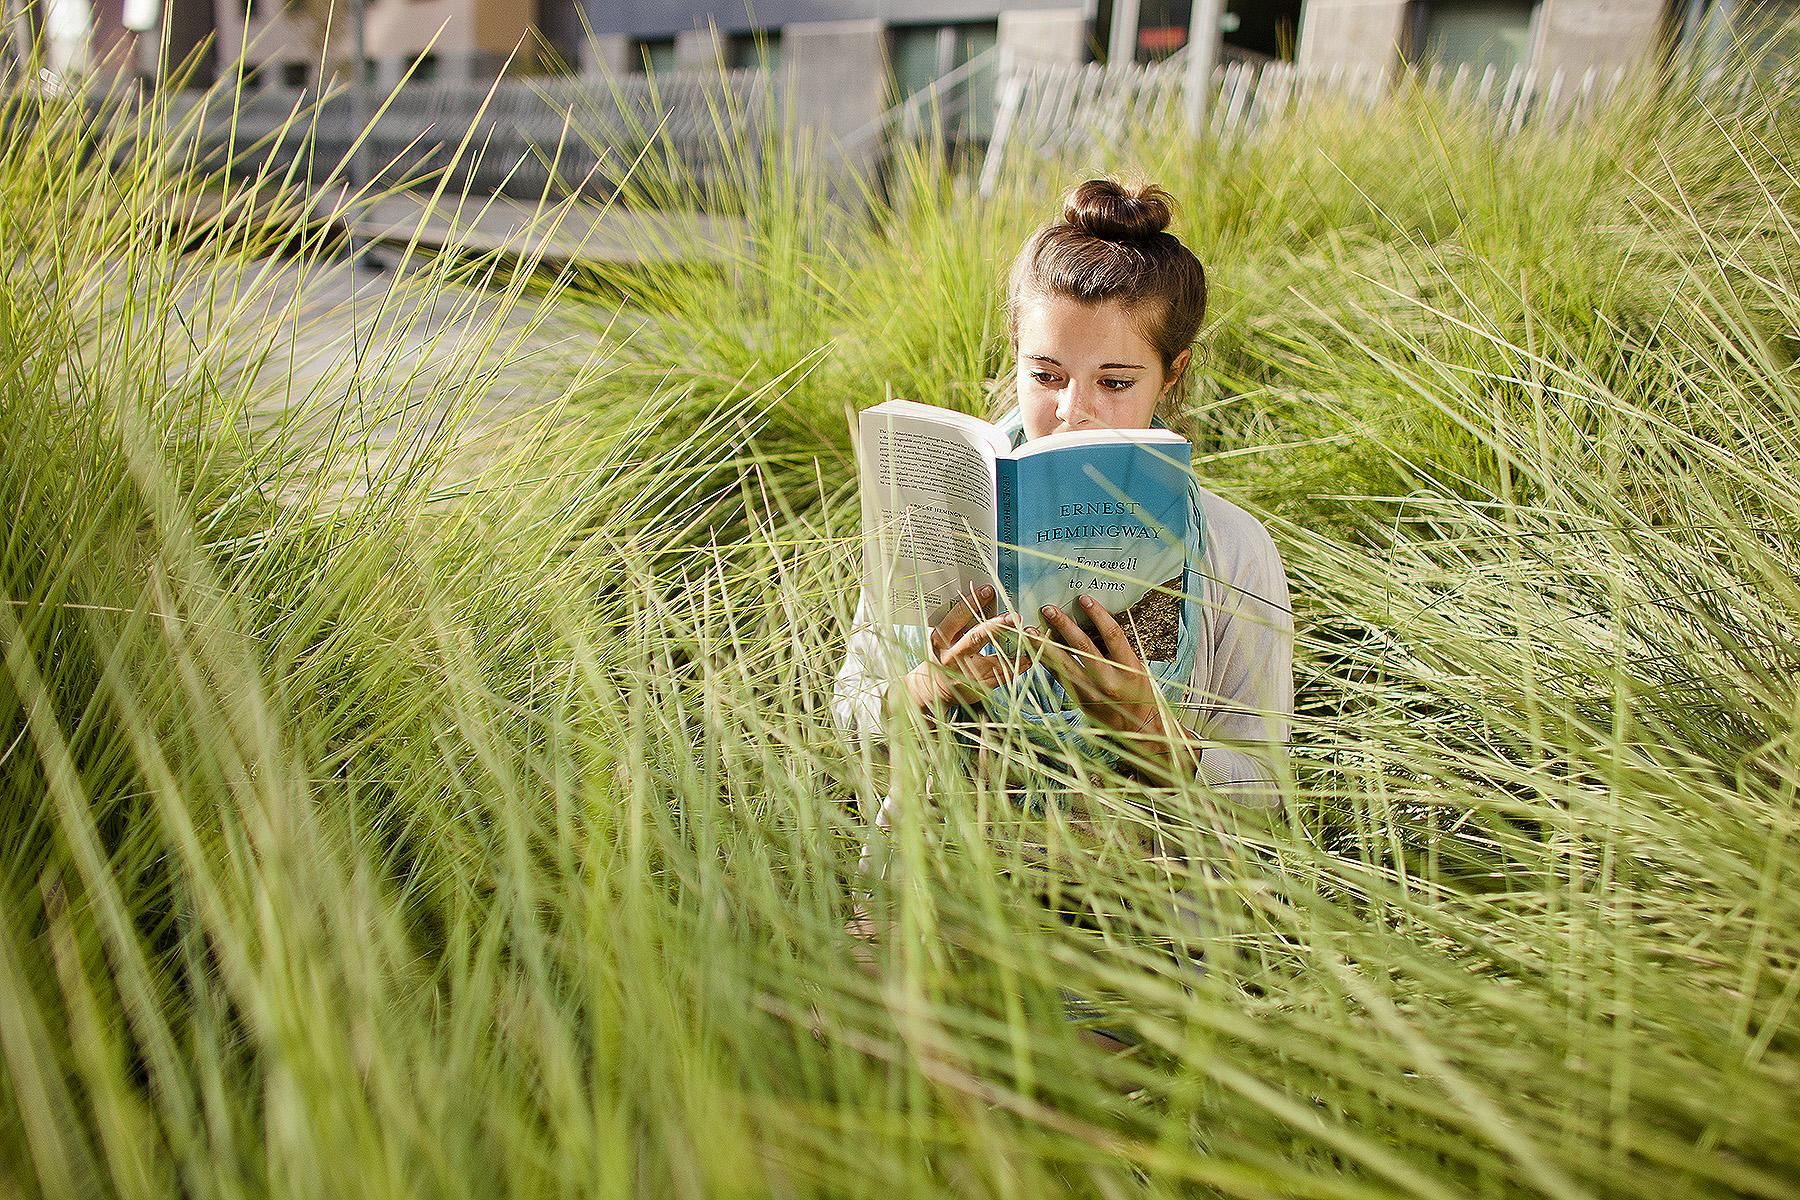 UC Berkeley student reading Hemingway in the grass